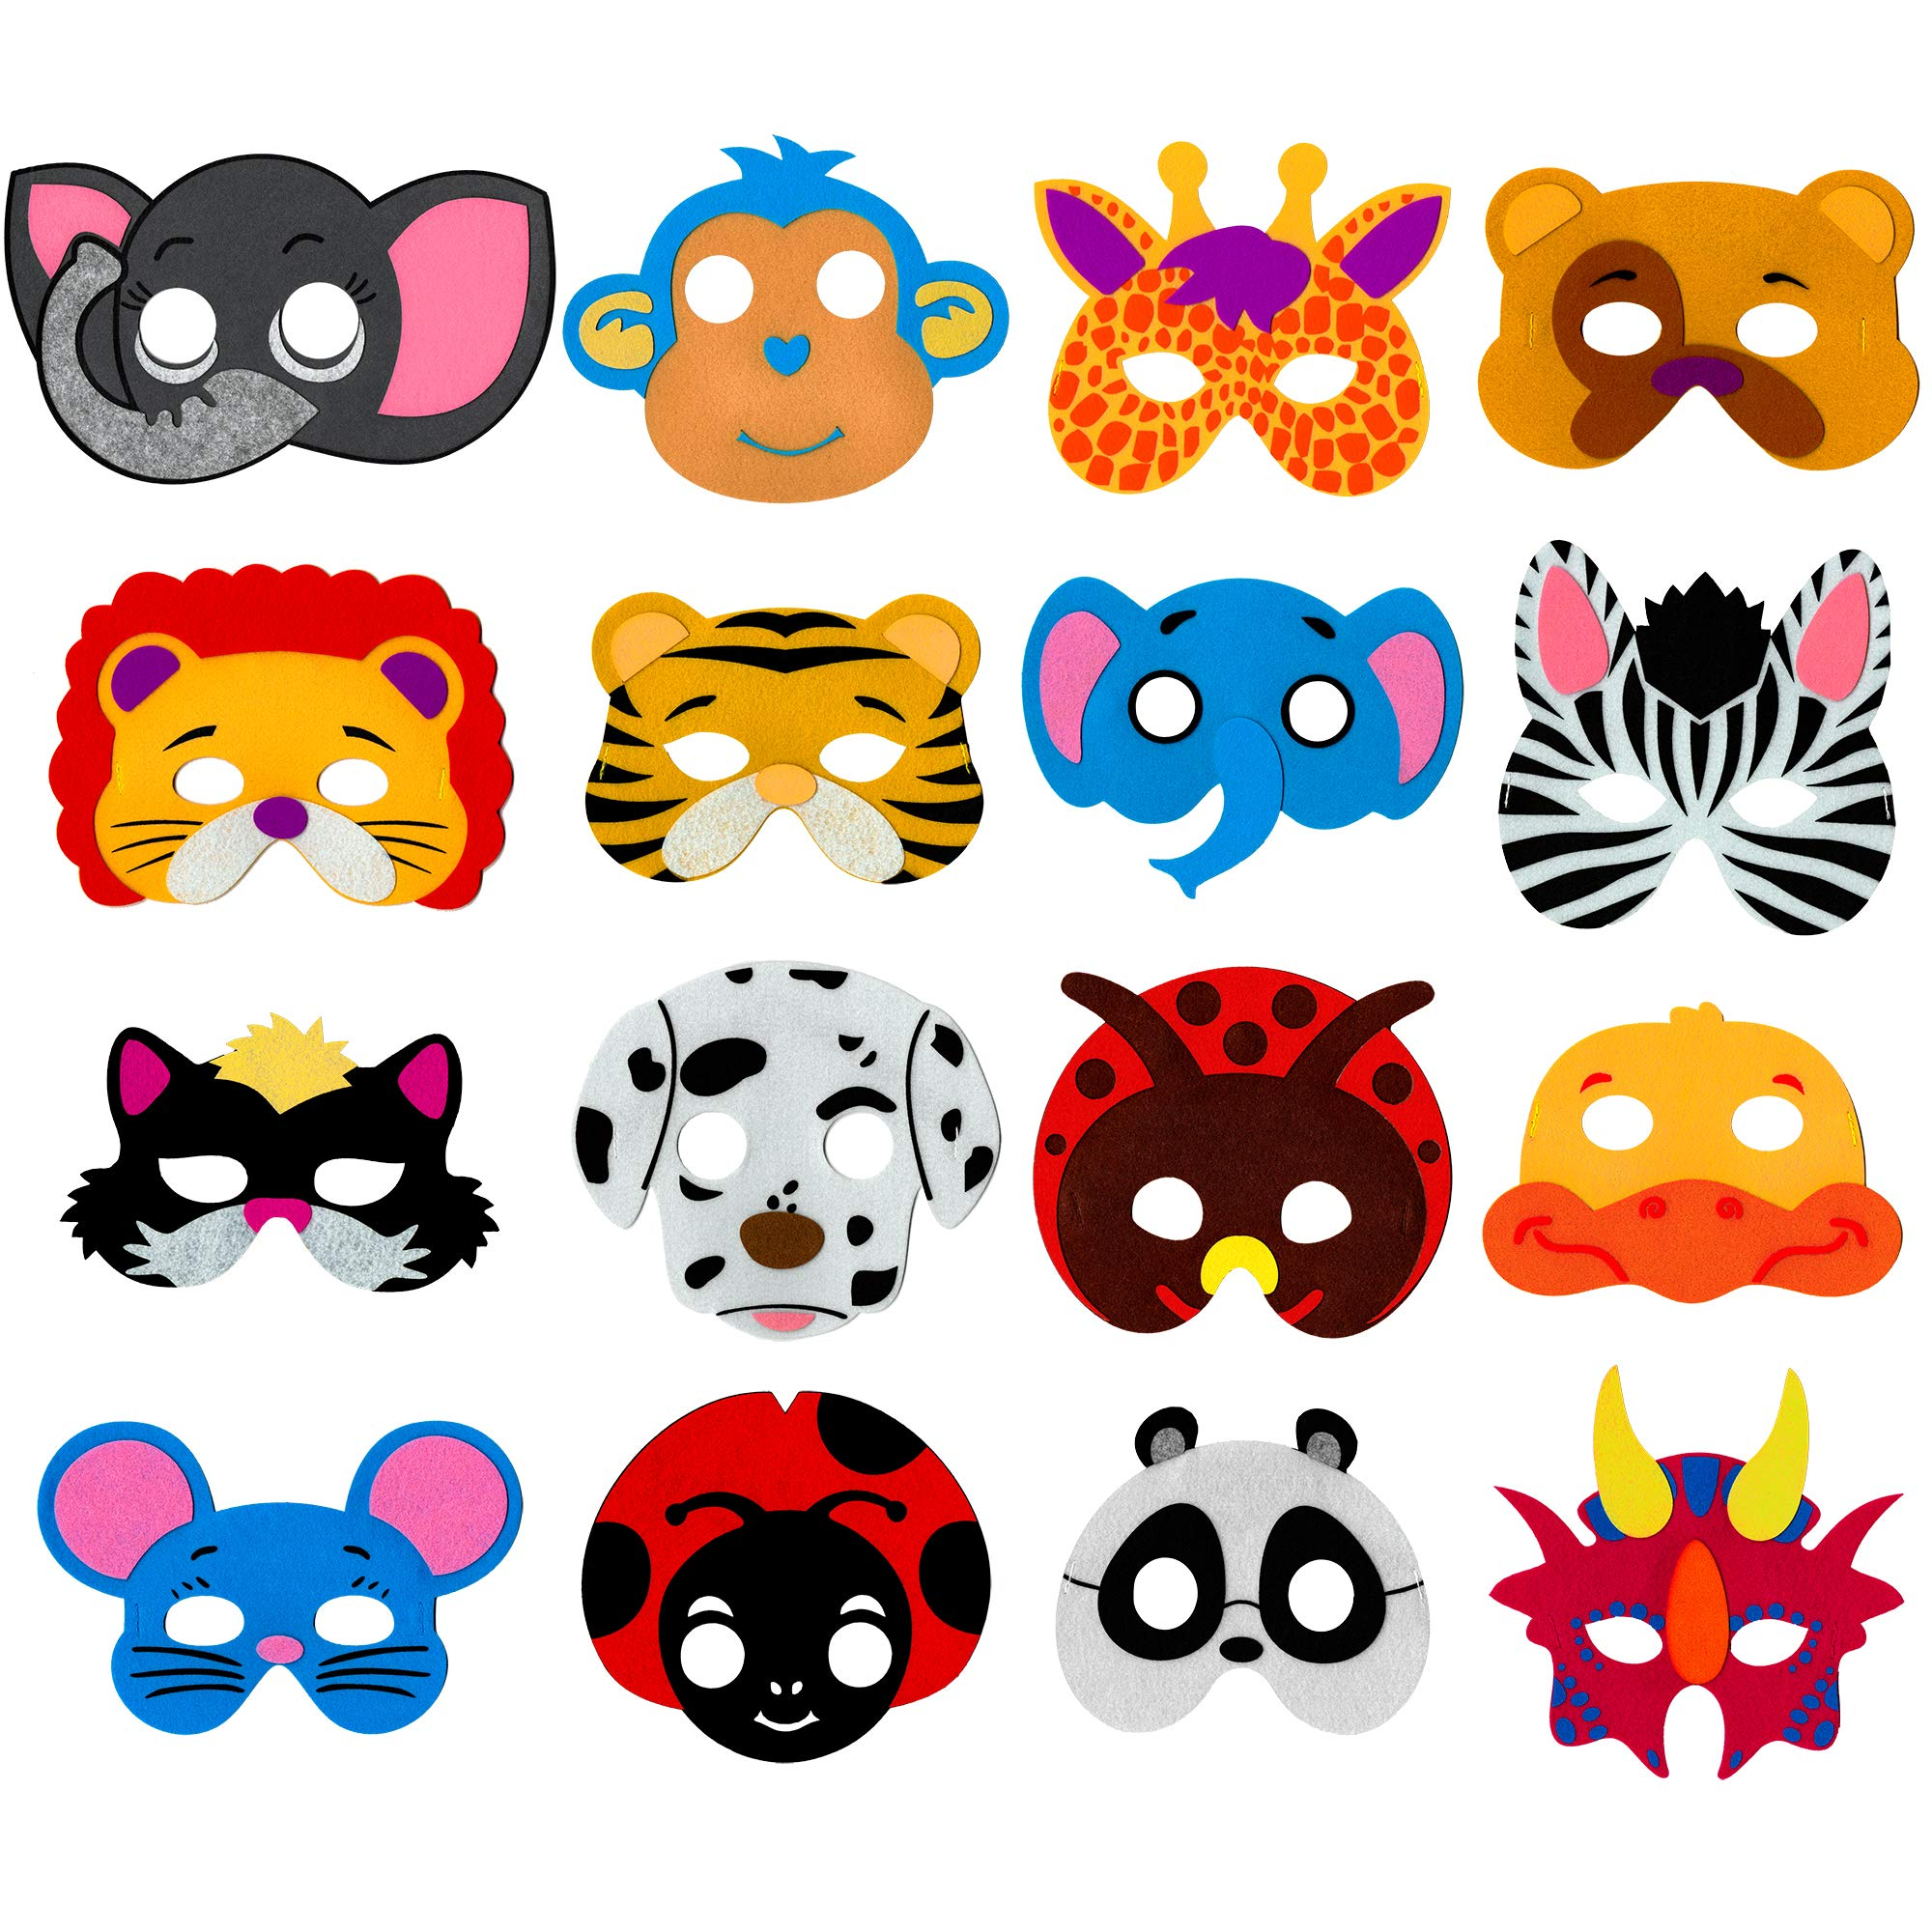 Little Seahorse Animal Masks for Kids Party - 16 Assorted Felt Masks, Birthday Parties Supplies